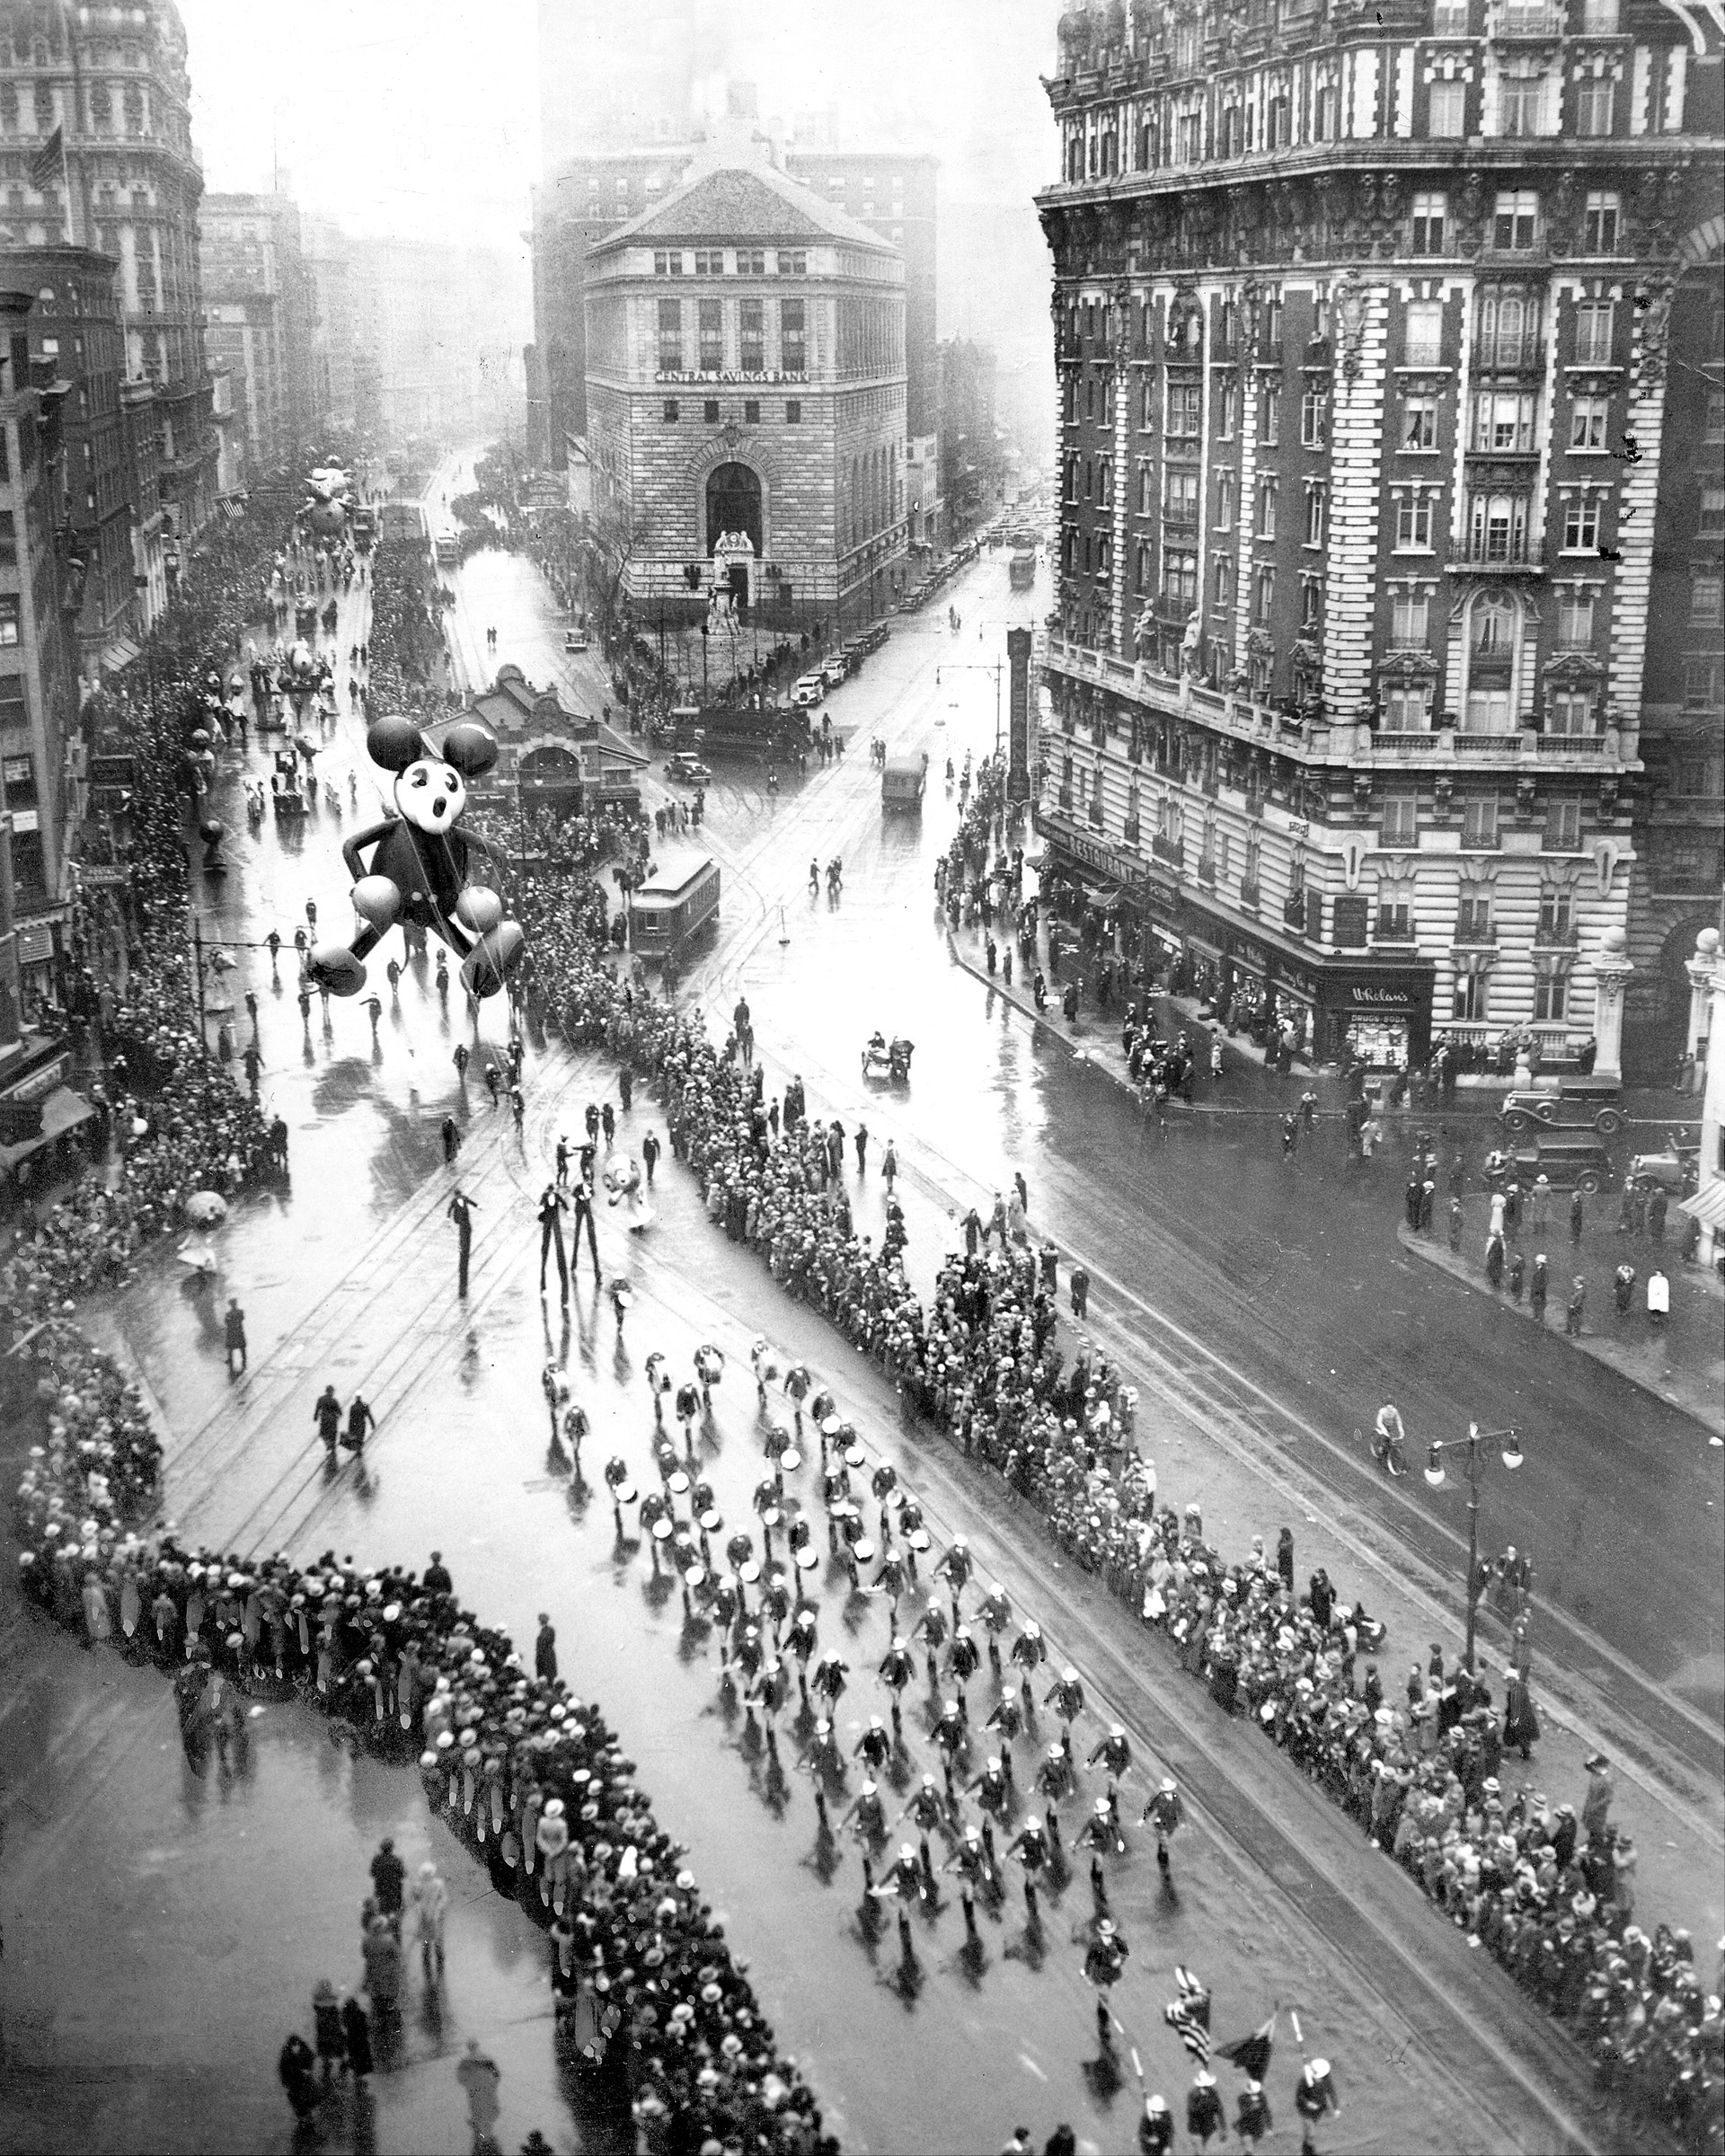 Quirky Vintage Photos of the Macy's Thanksgiving Day Parade